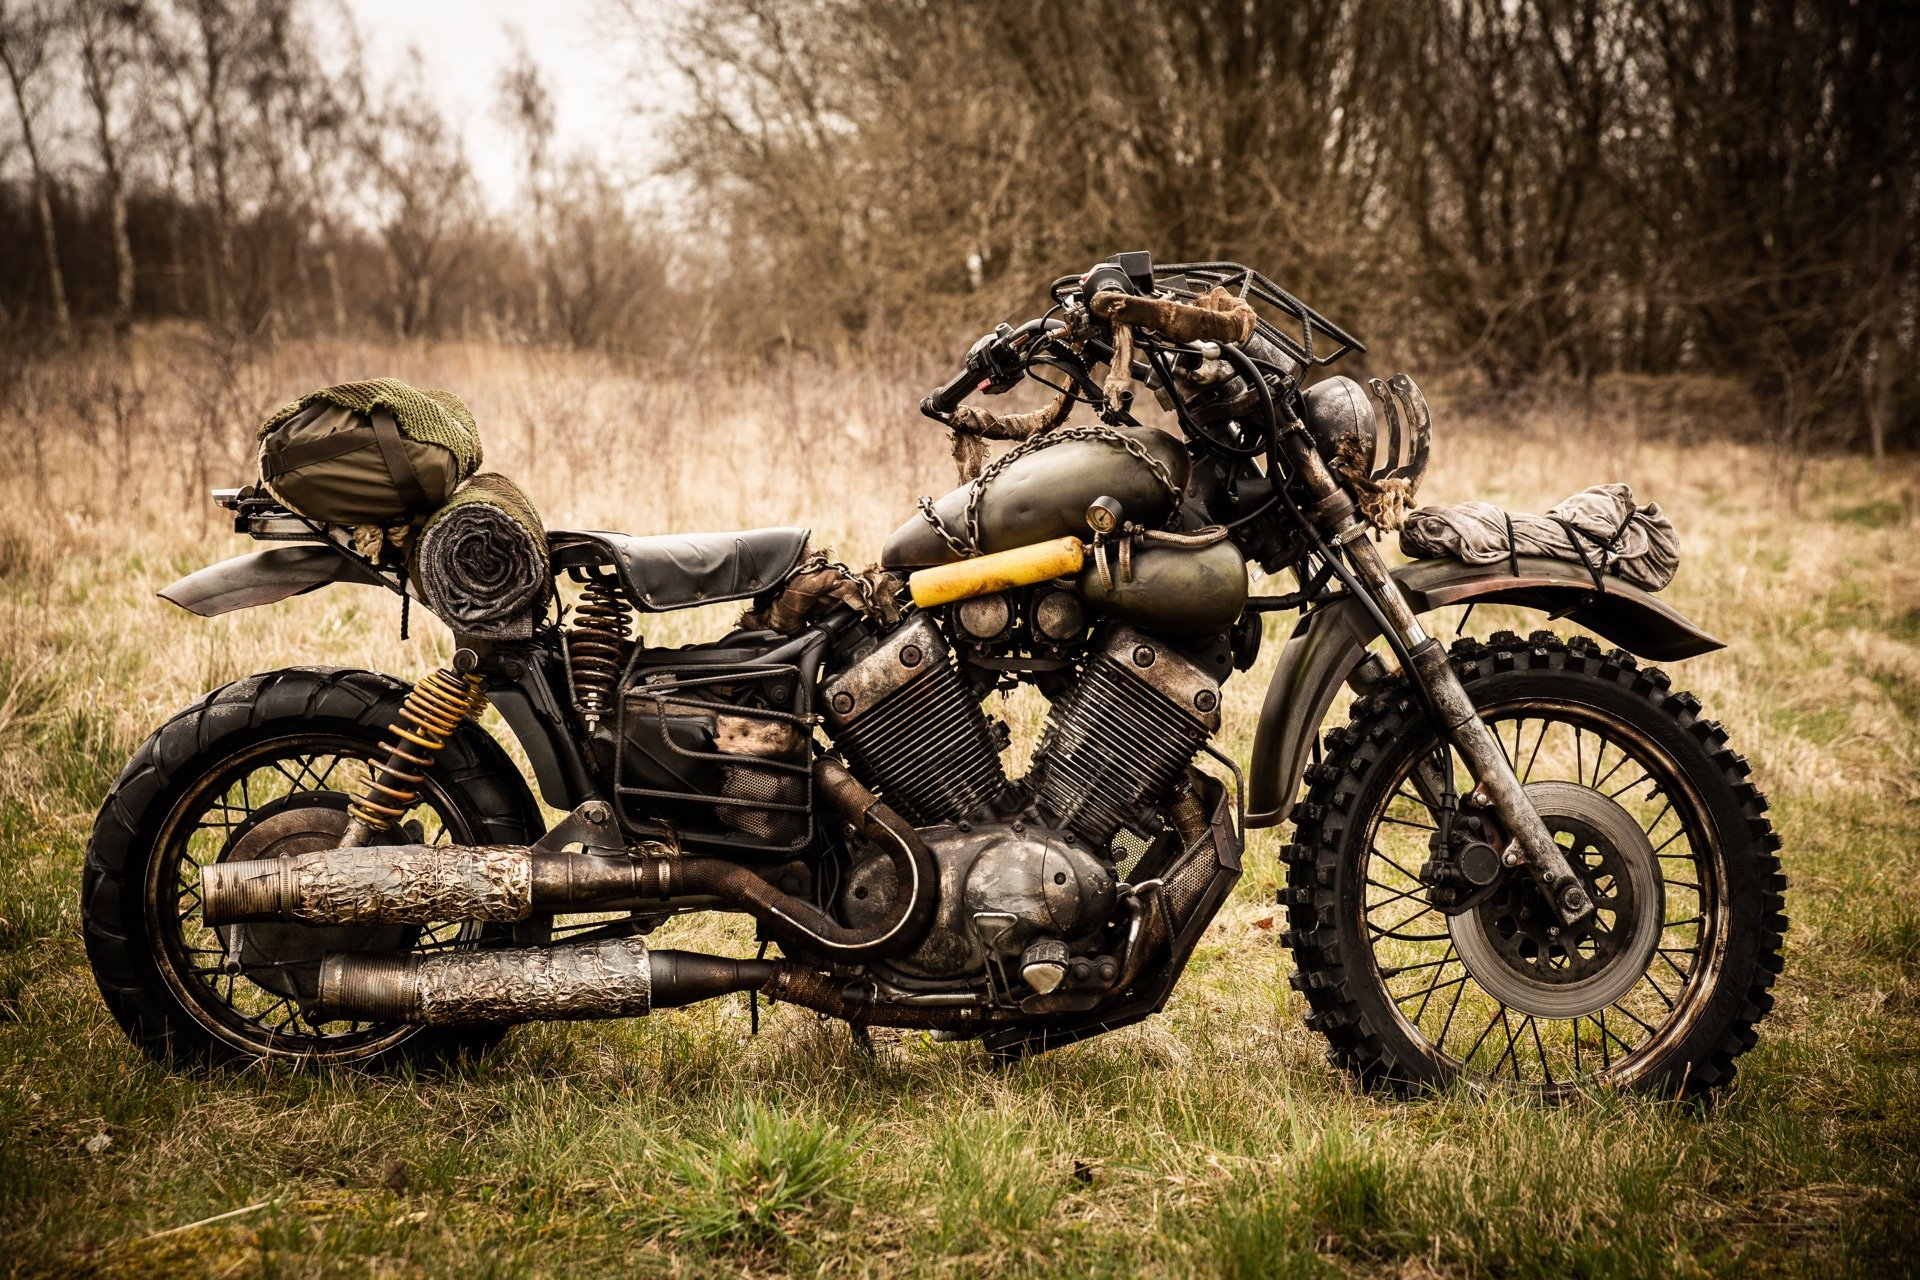 There's a real version of Deacon's Days Gone bike screenshot